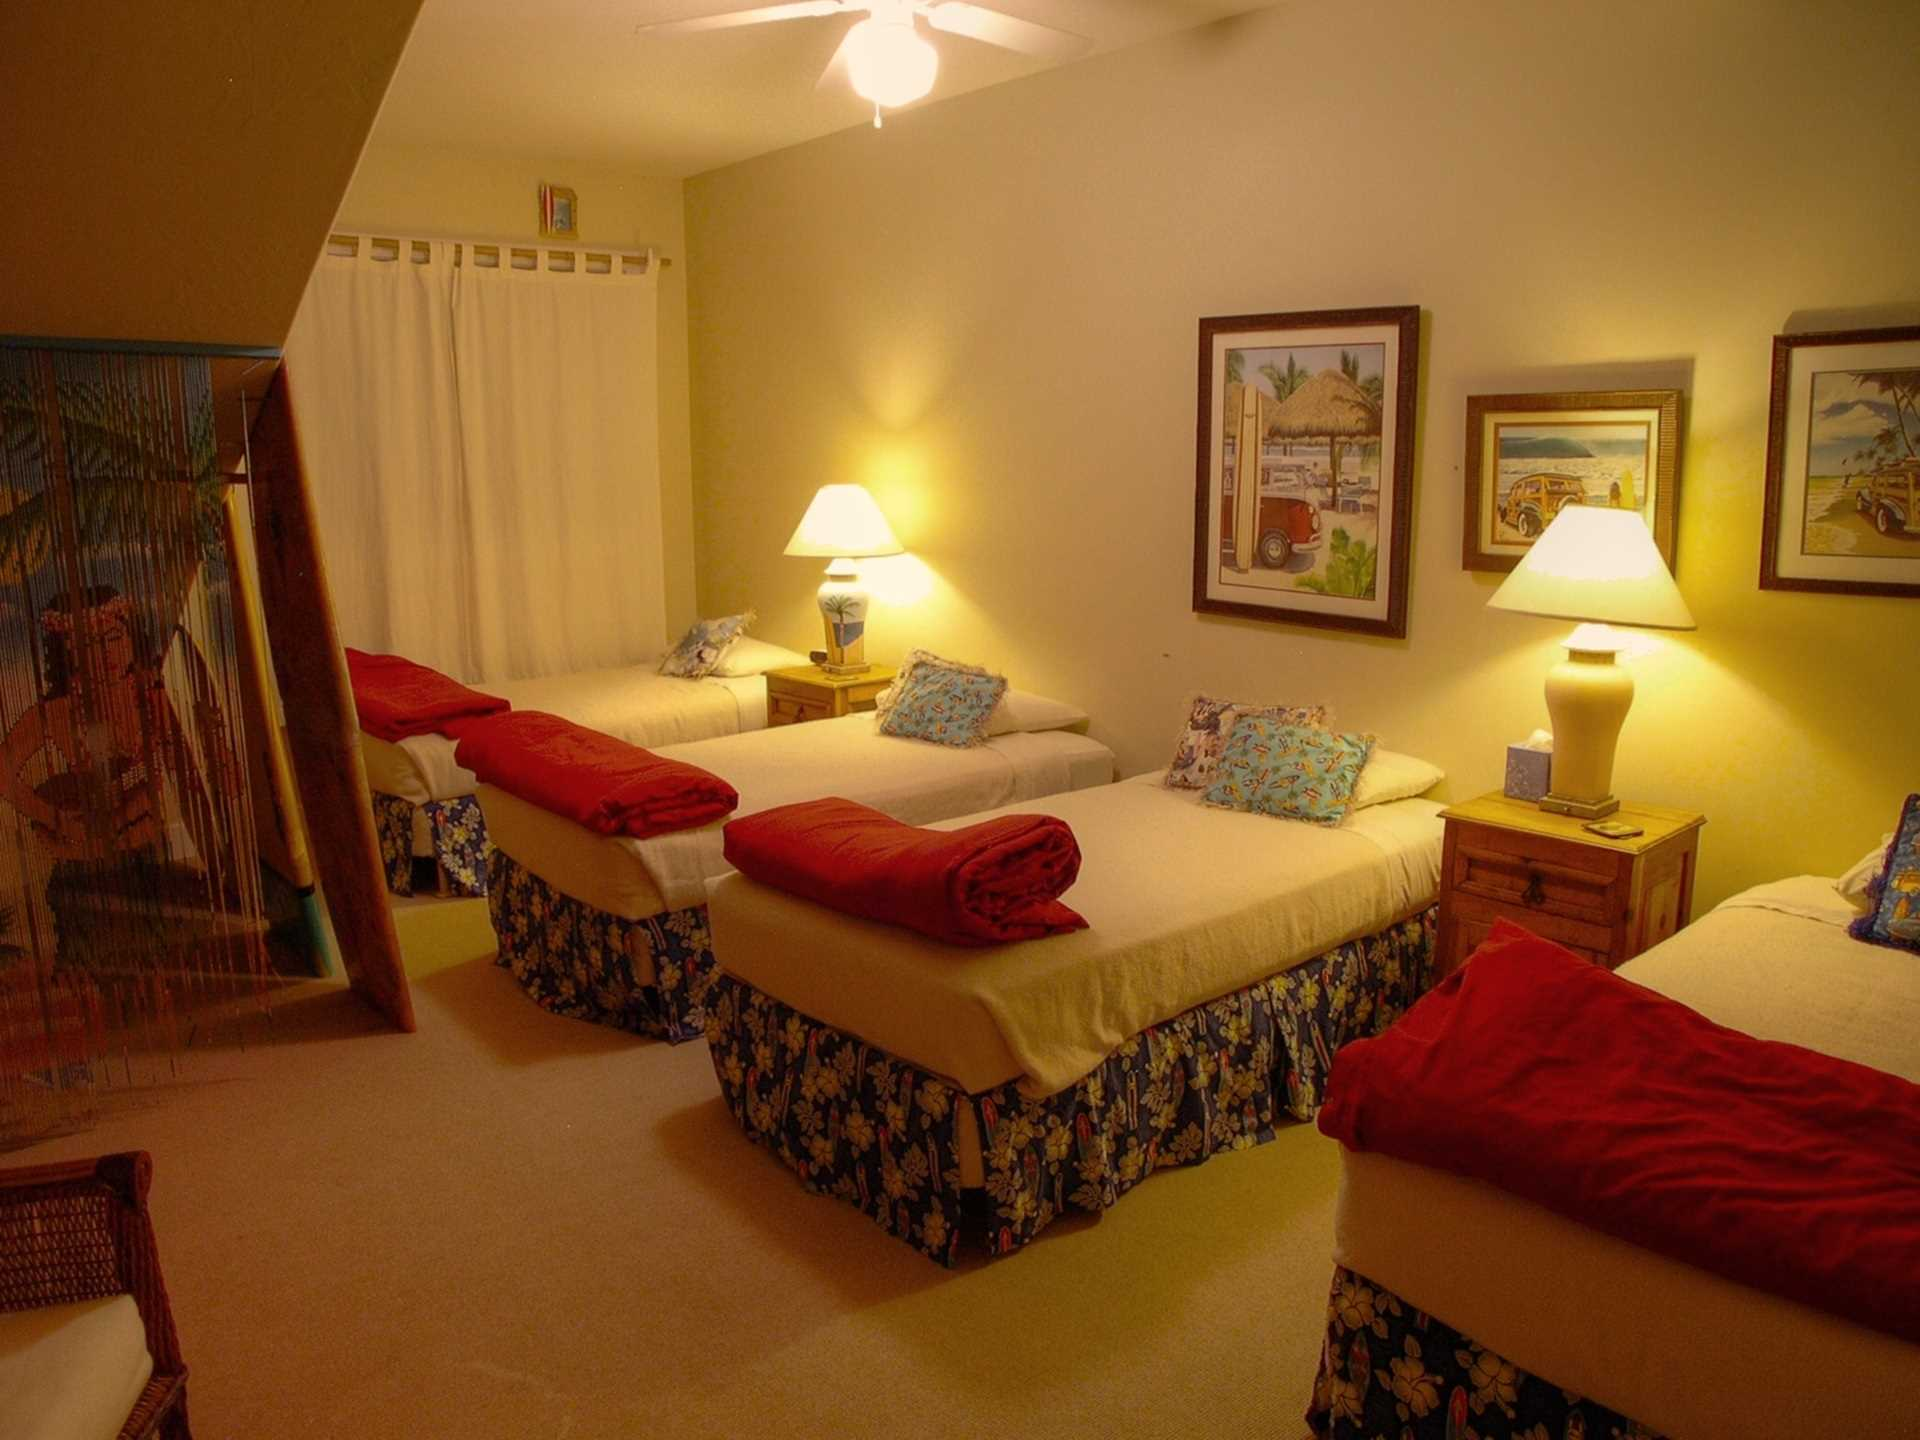 The Surfer's Bedroom is colorfully decorated with surf board